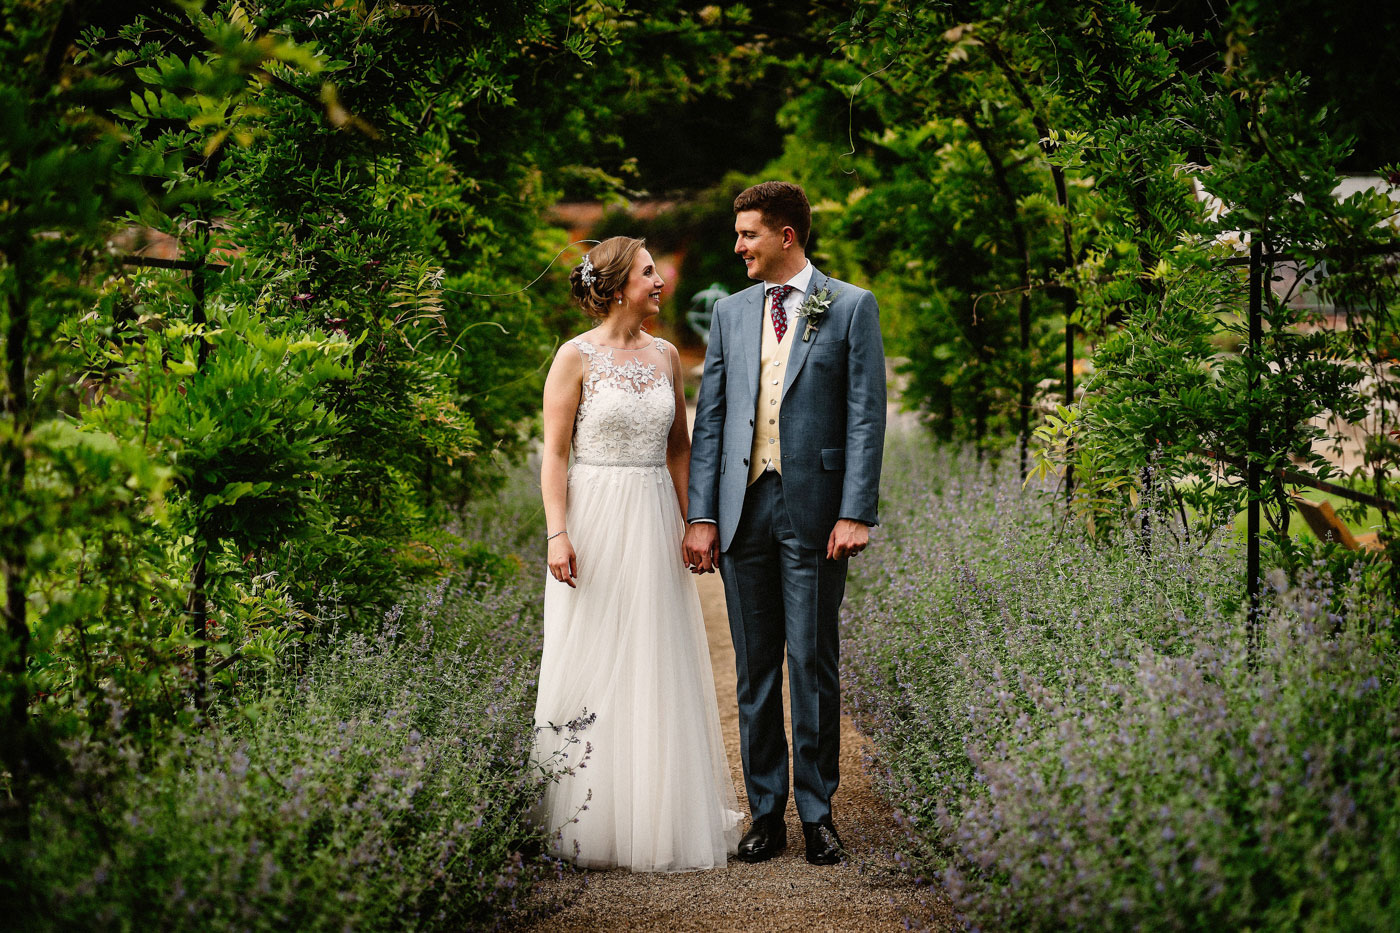 Claire & David's Thorpe Garden Wedding